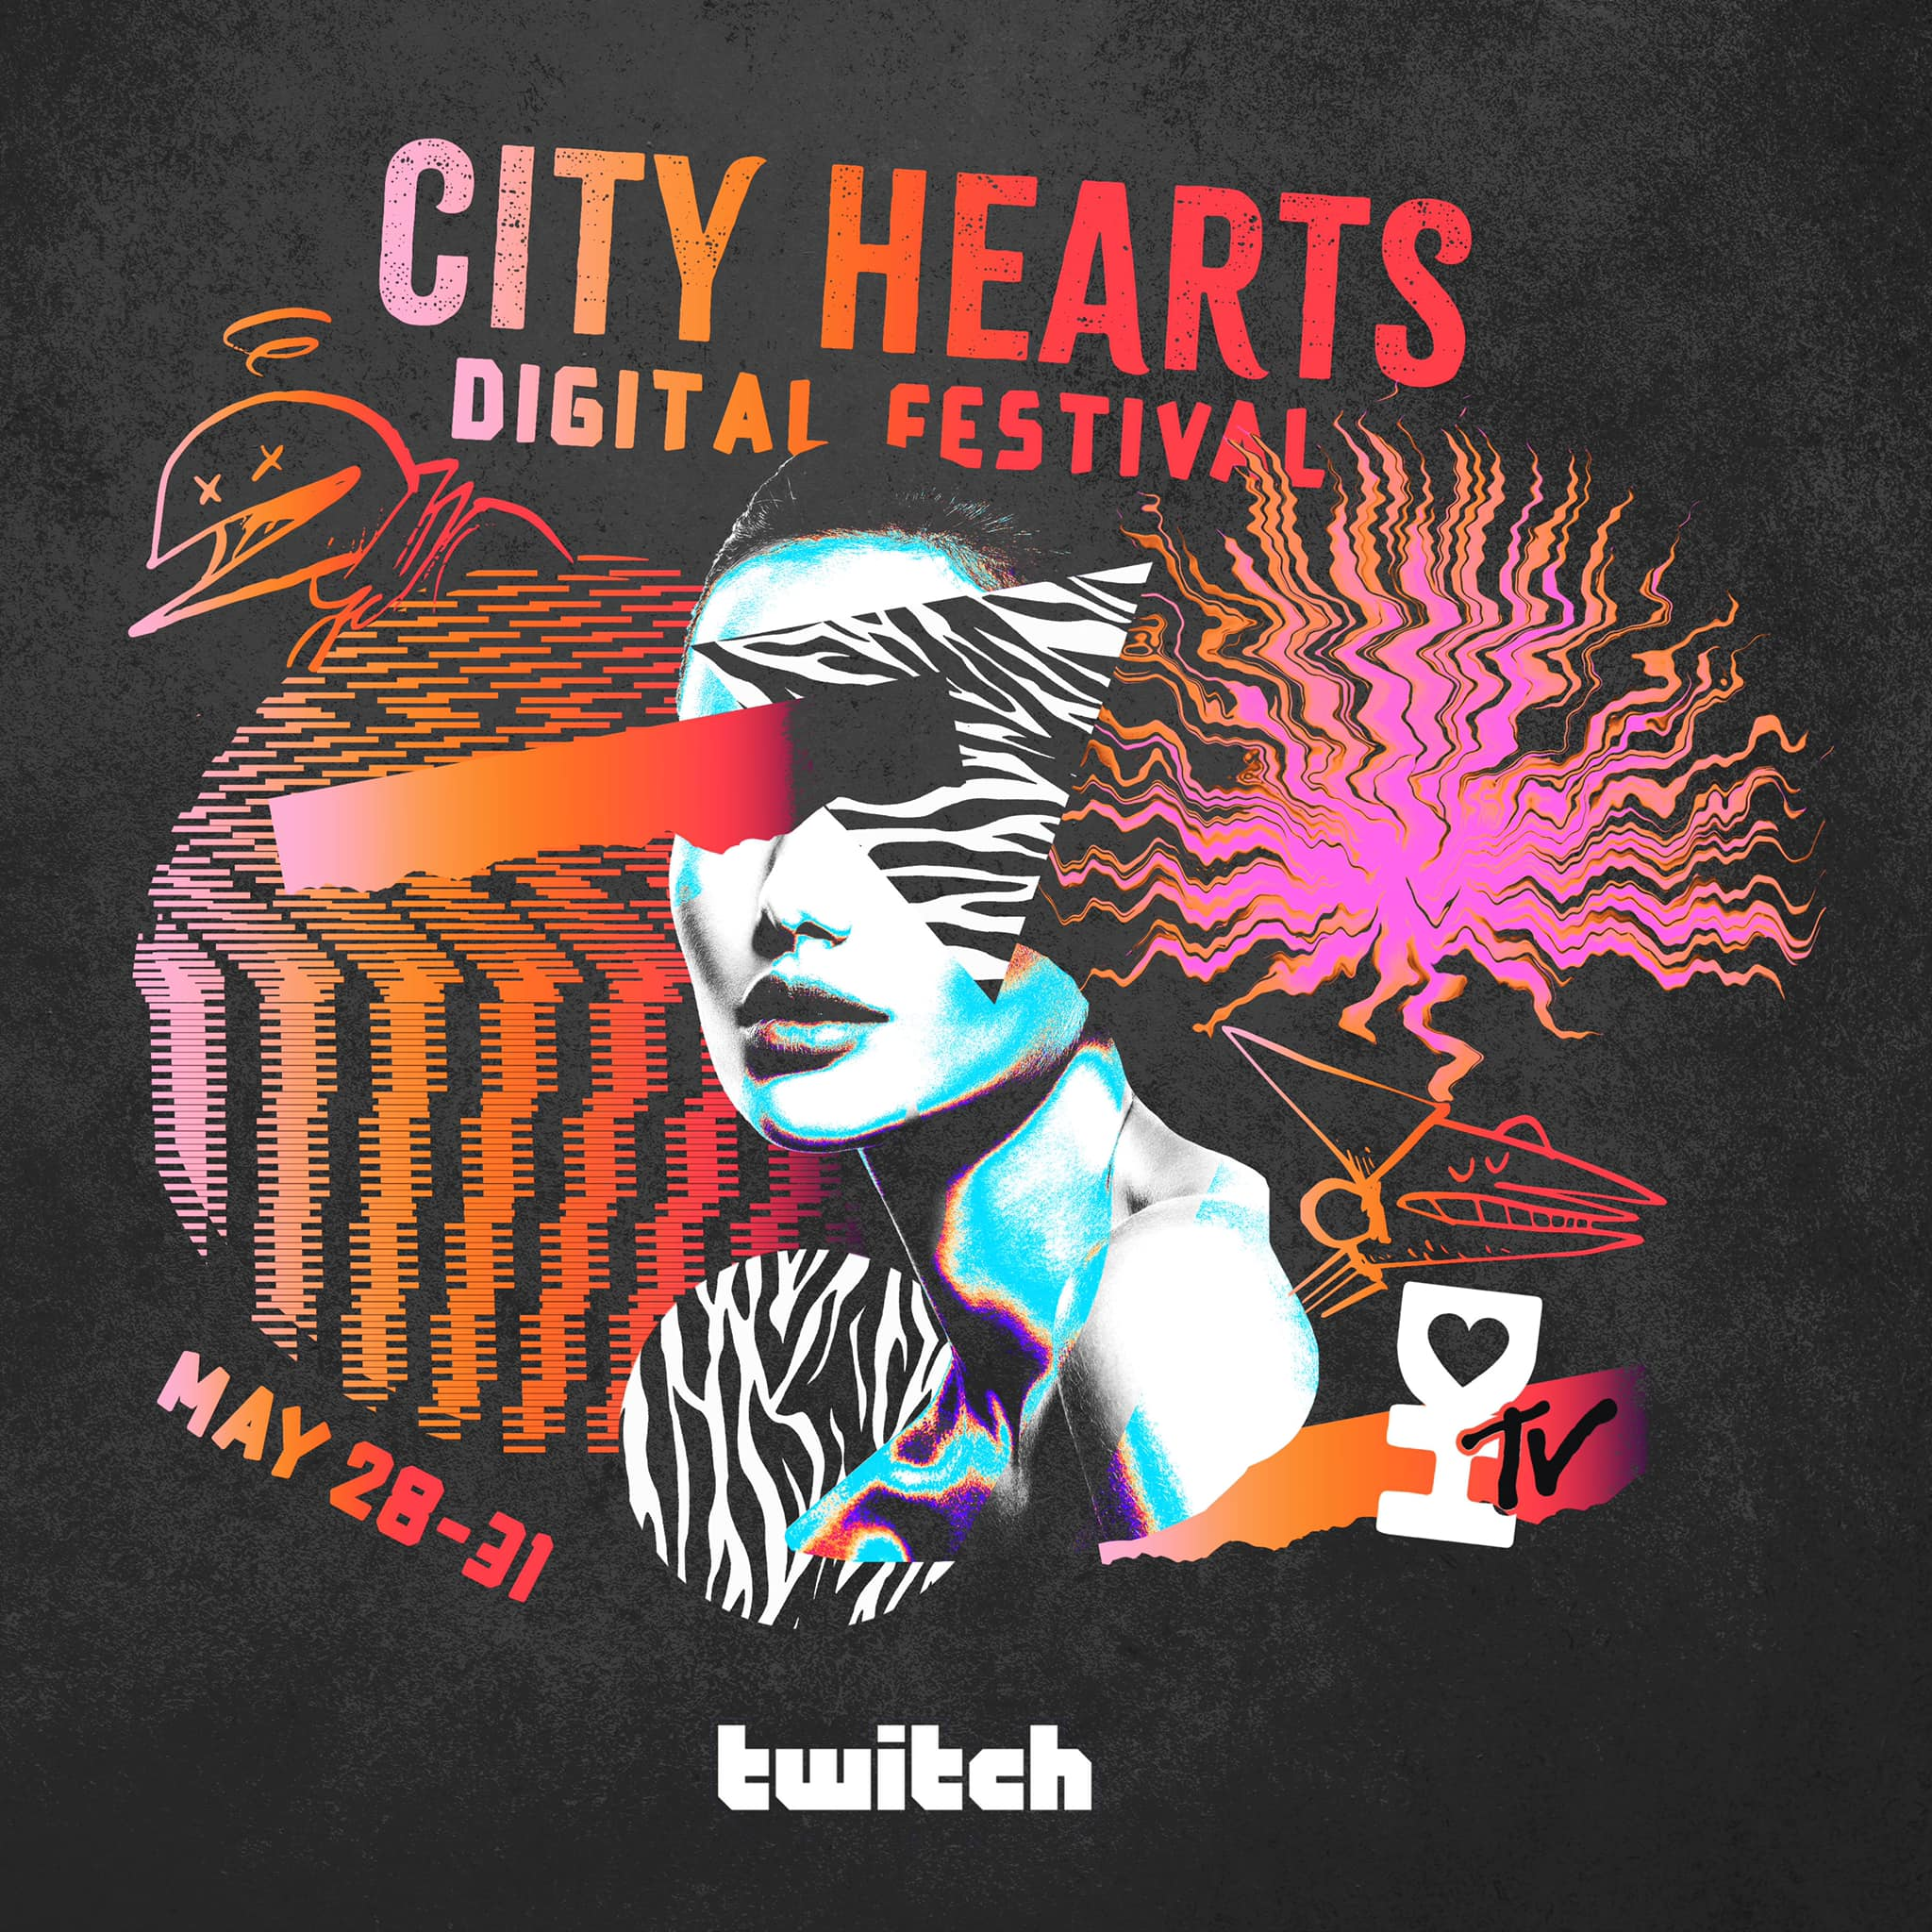 City Hearts Digital Festival